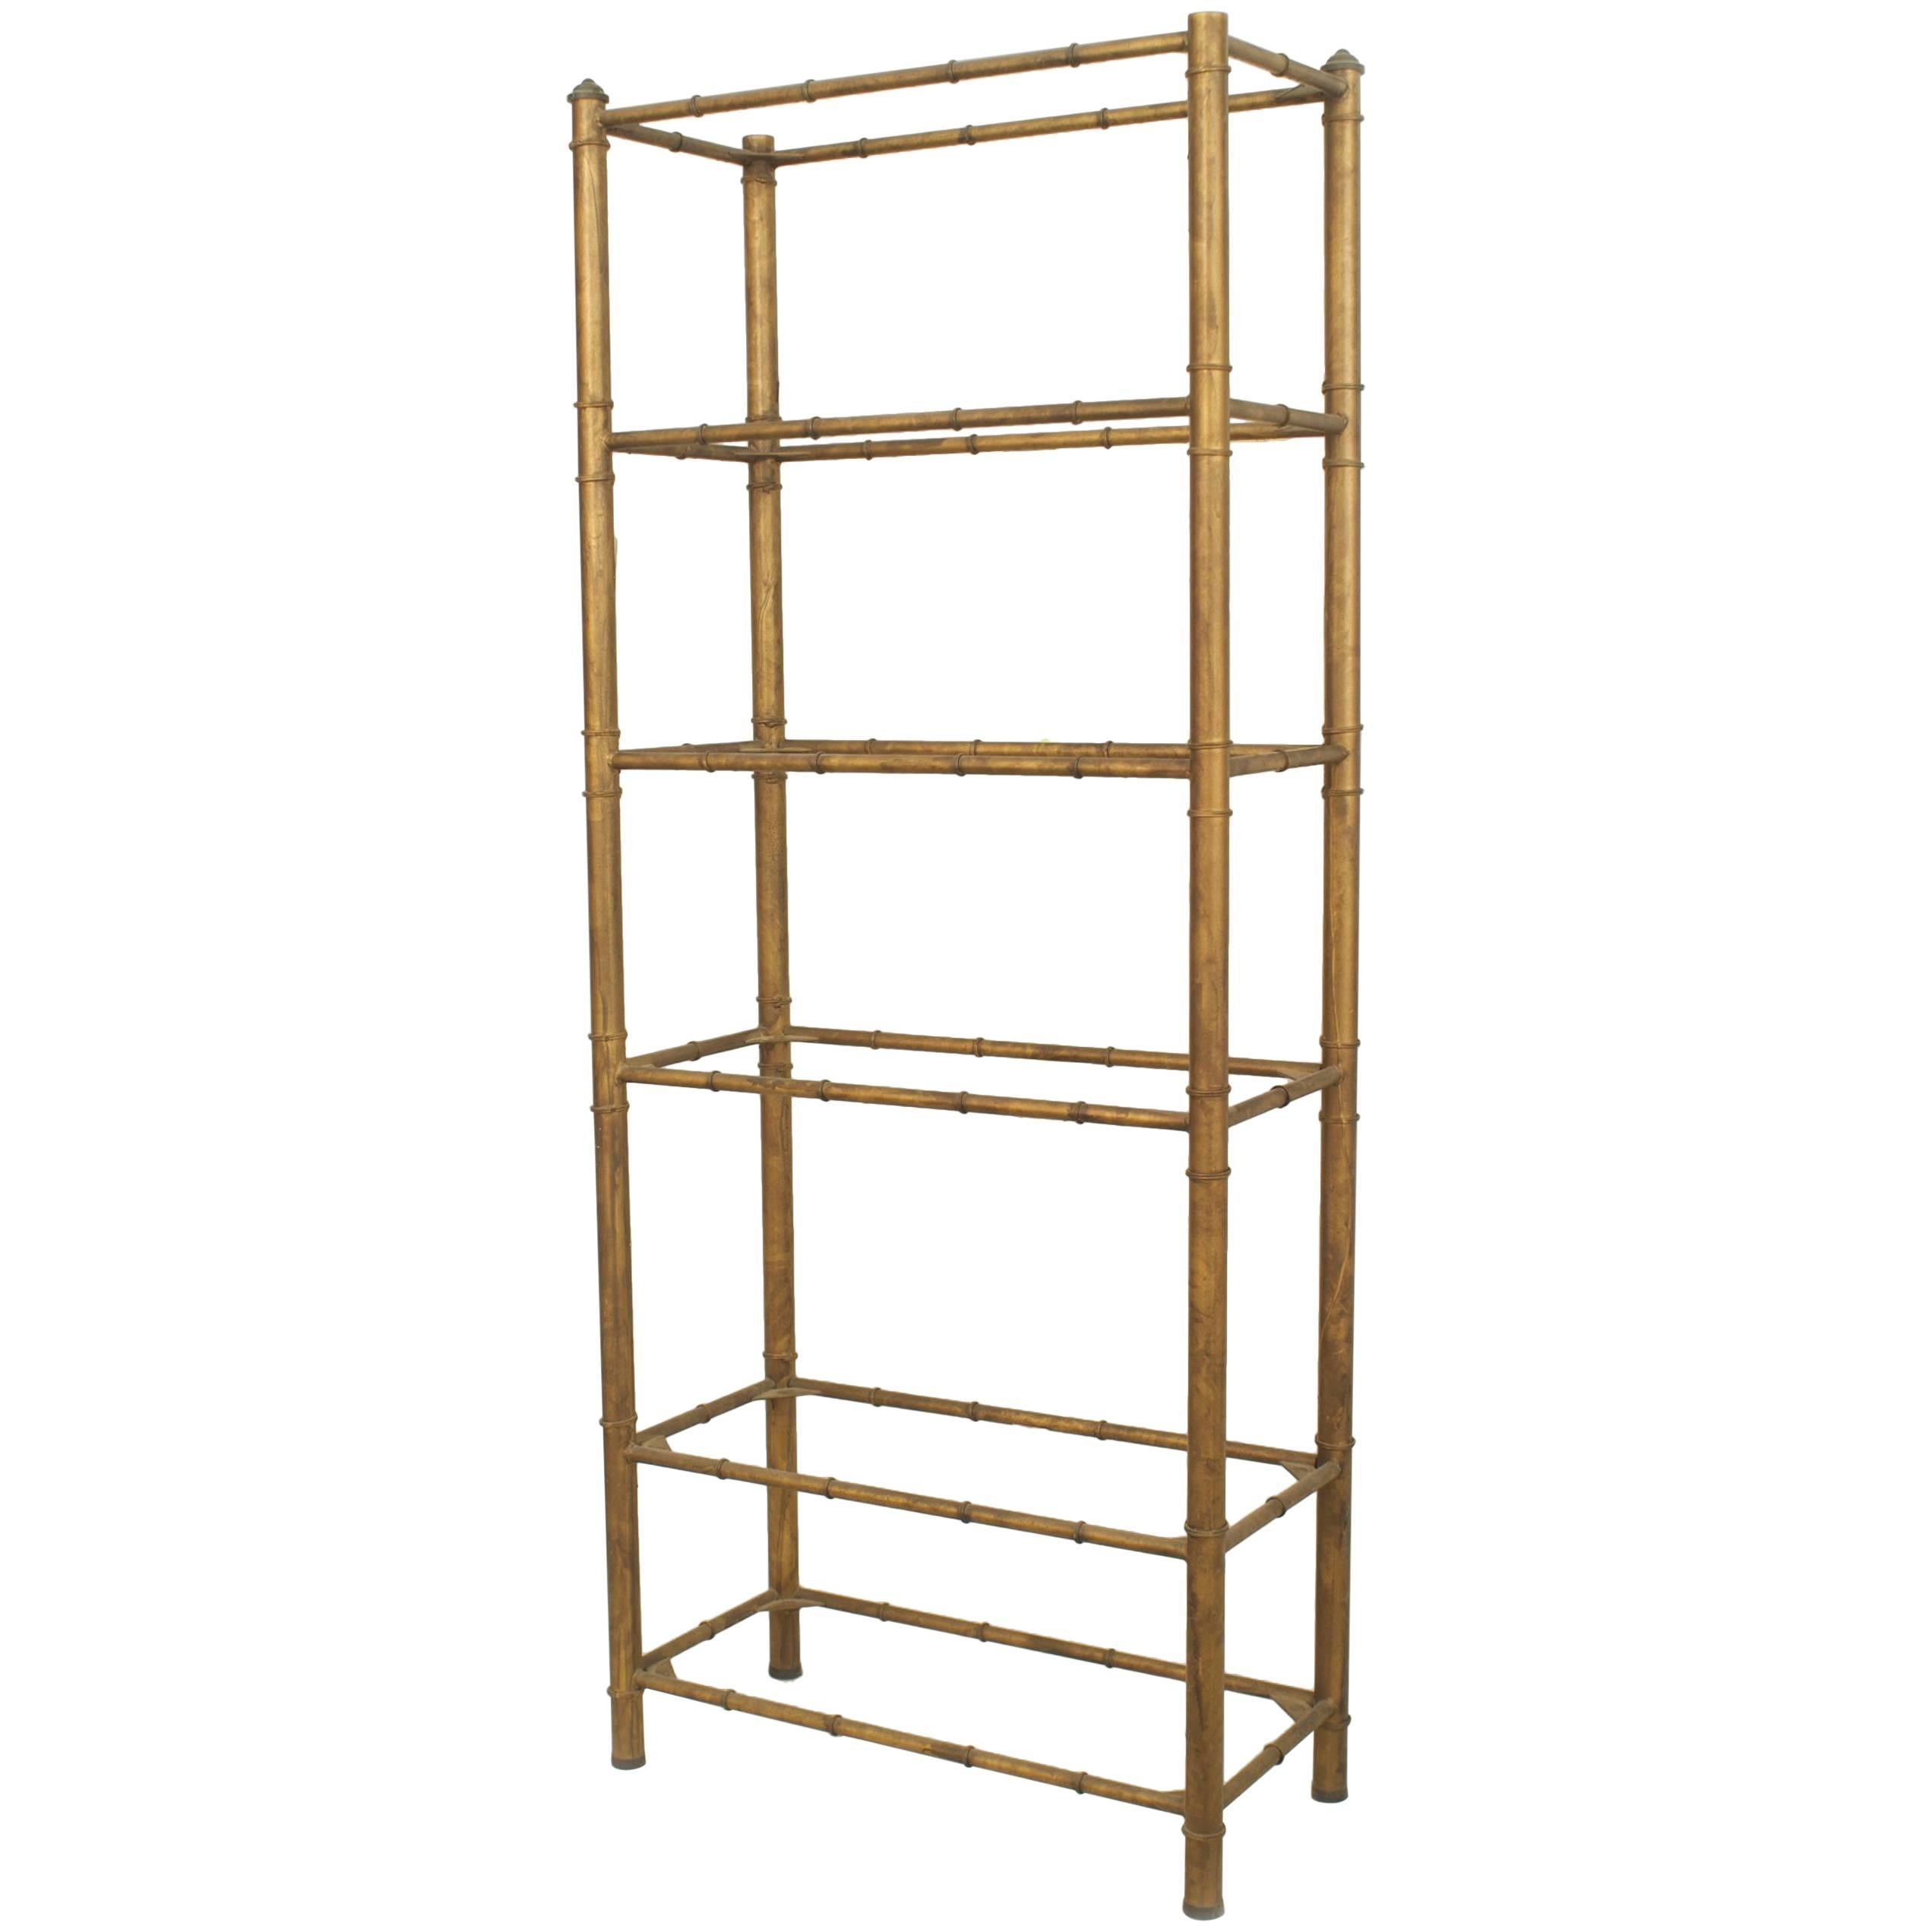 American Midcentury Dark Gold-Painted Faux Bamboo Design Etagere